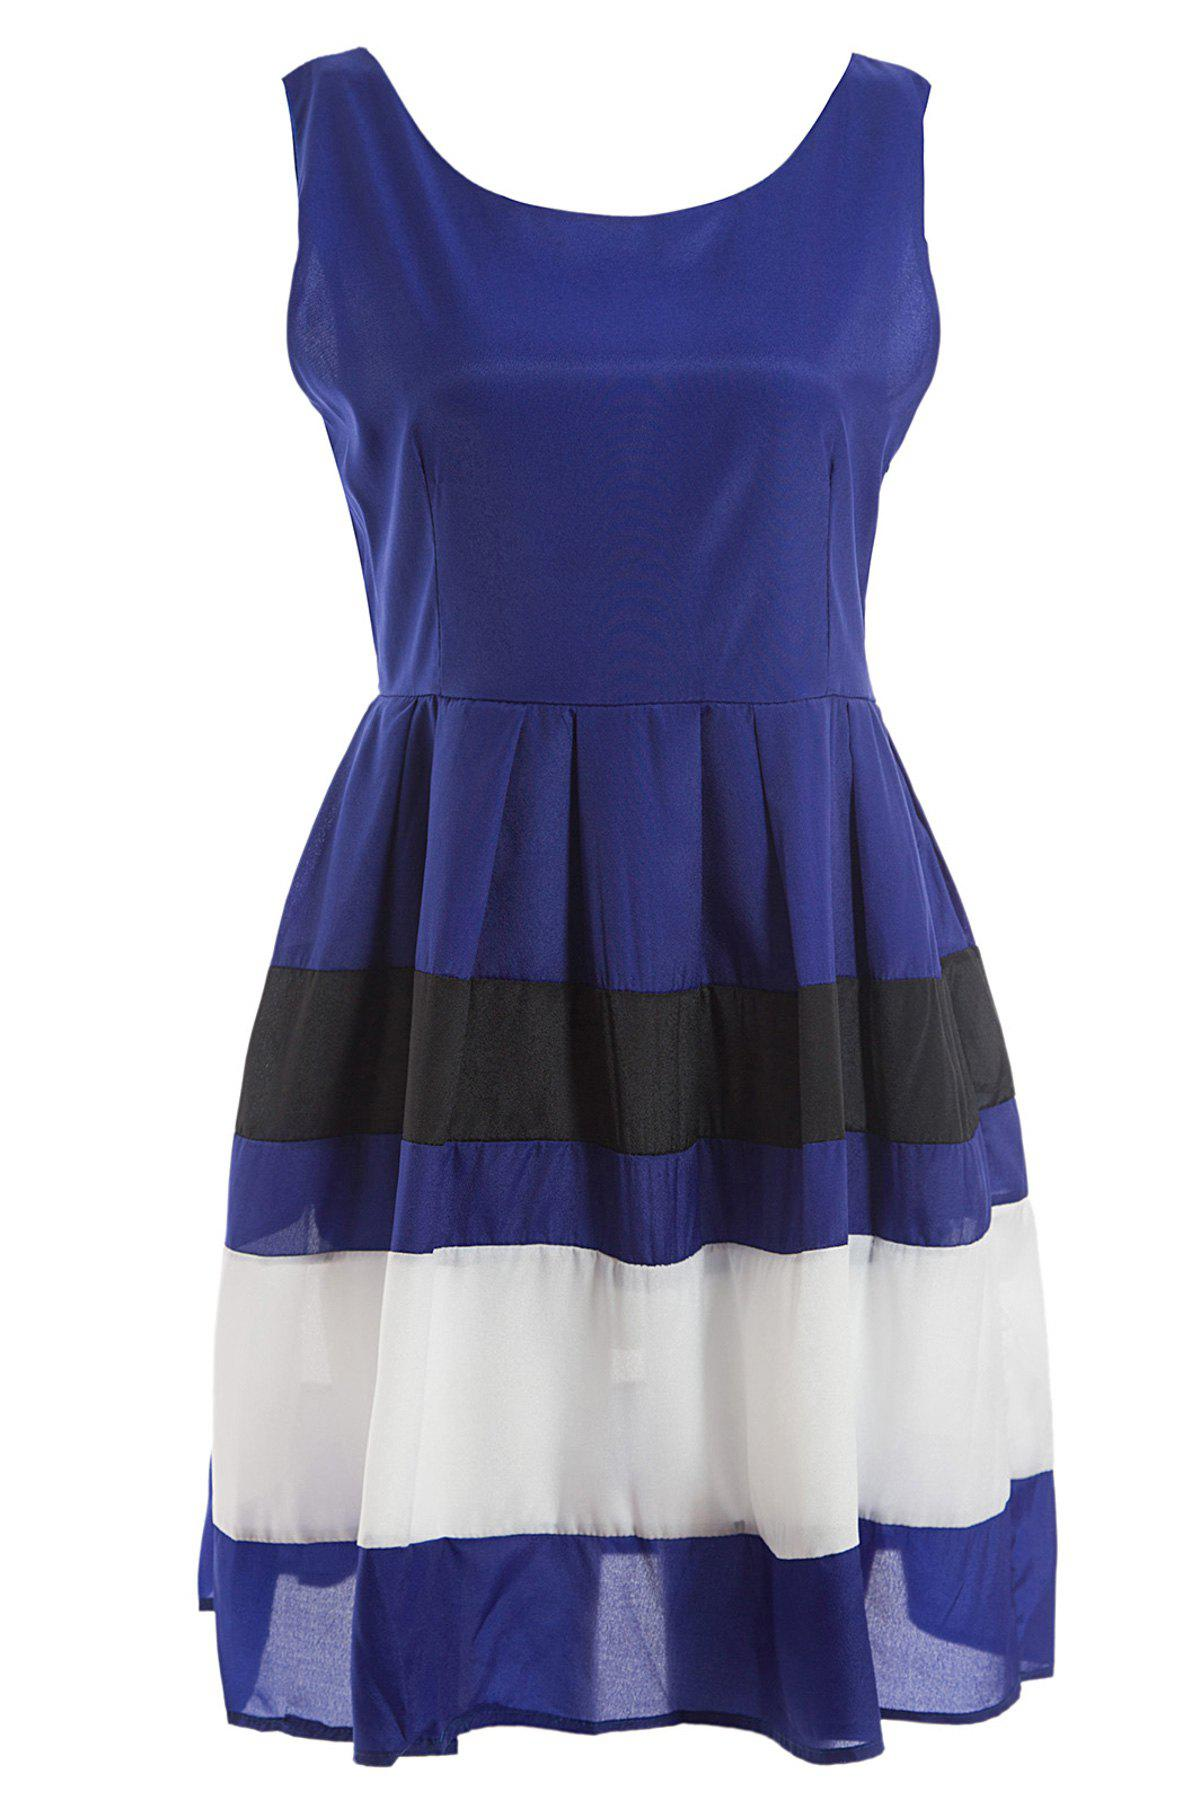 Sleeveless Sweet Color Matching Vintage Style Women's Dress